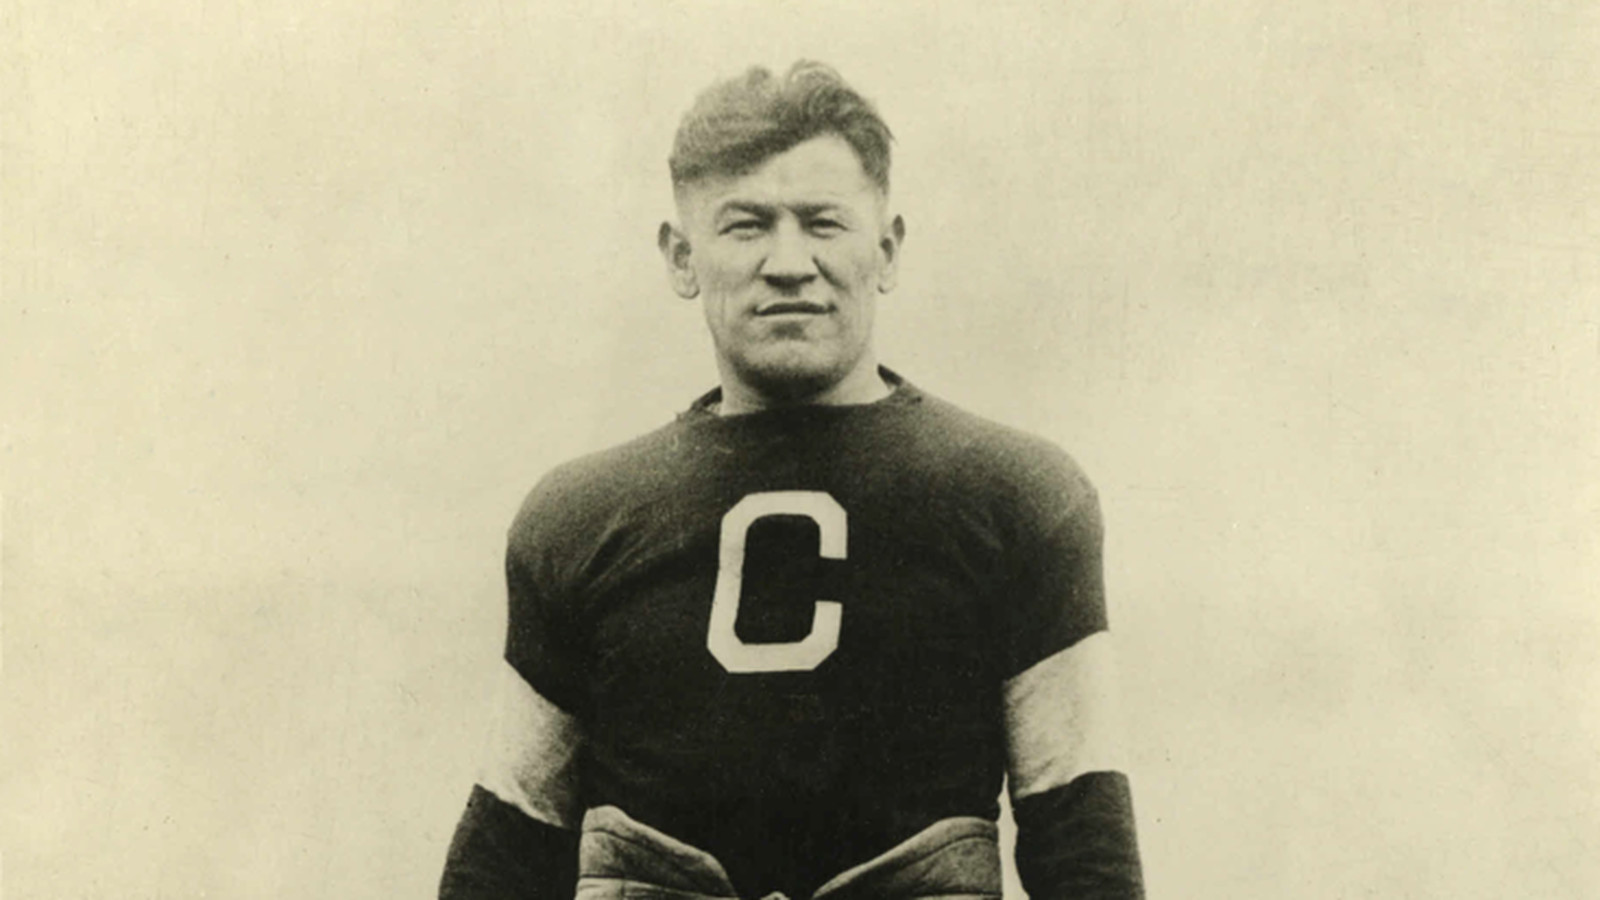 an overview of the achievements by jim thorpe native american olympic sportist